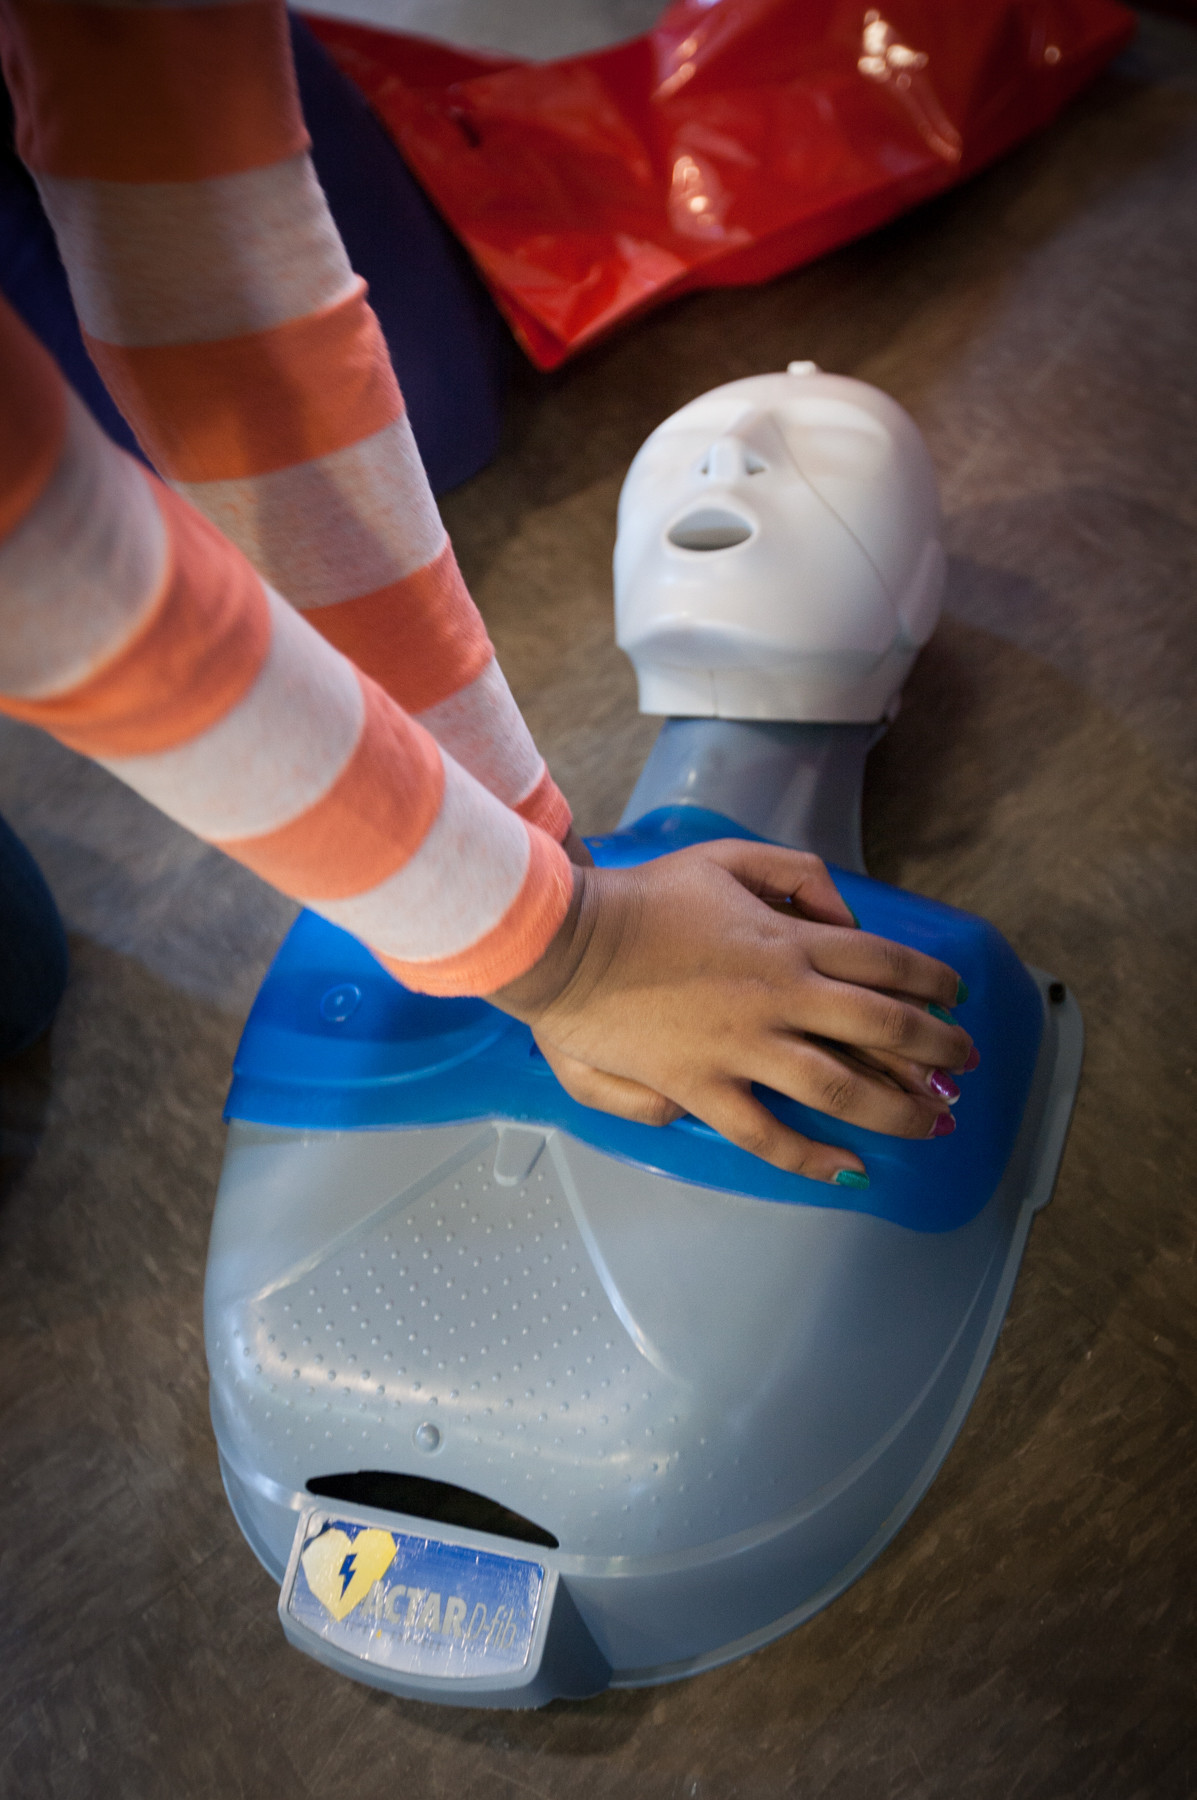 Bwi Airport Debuts Hands On Cpr Training Kiosk For Passengers